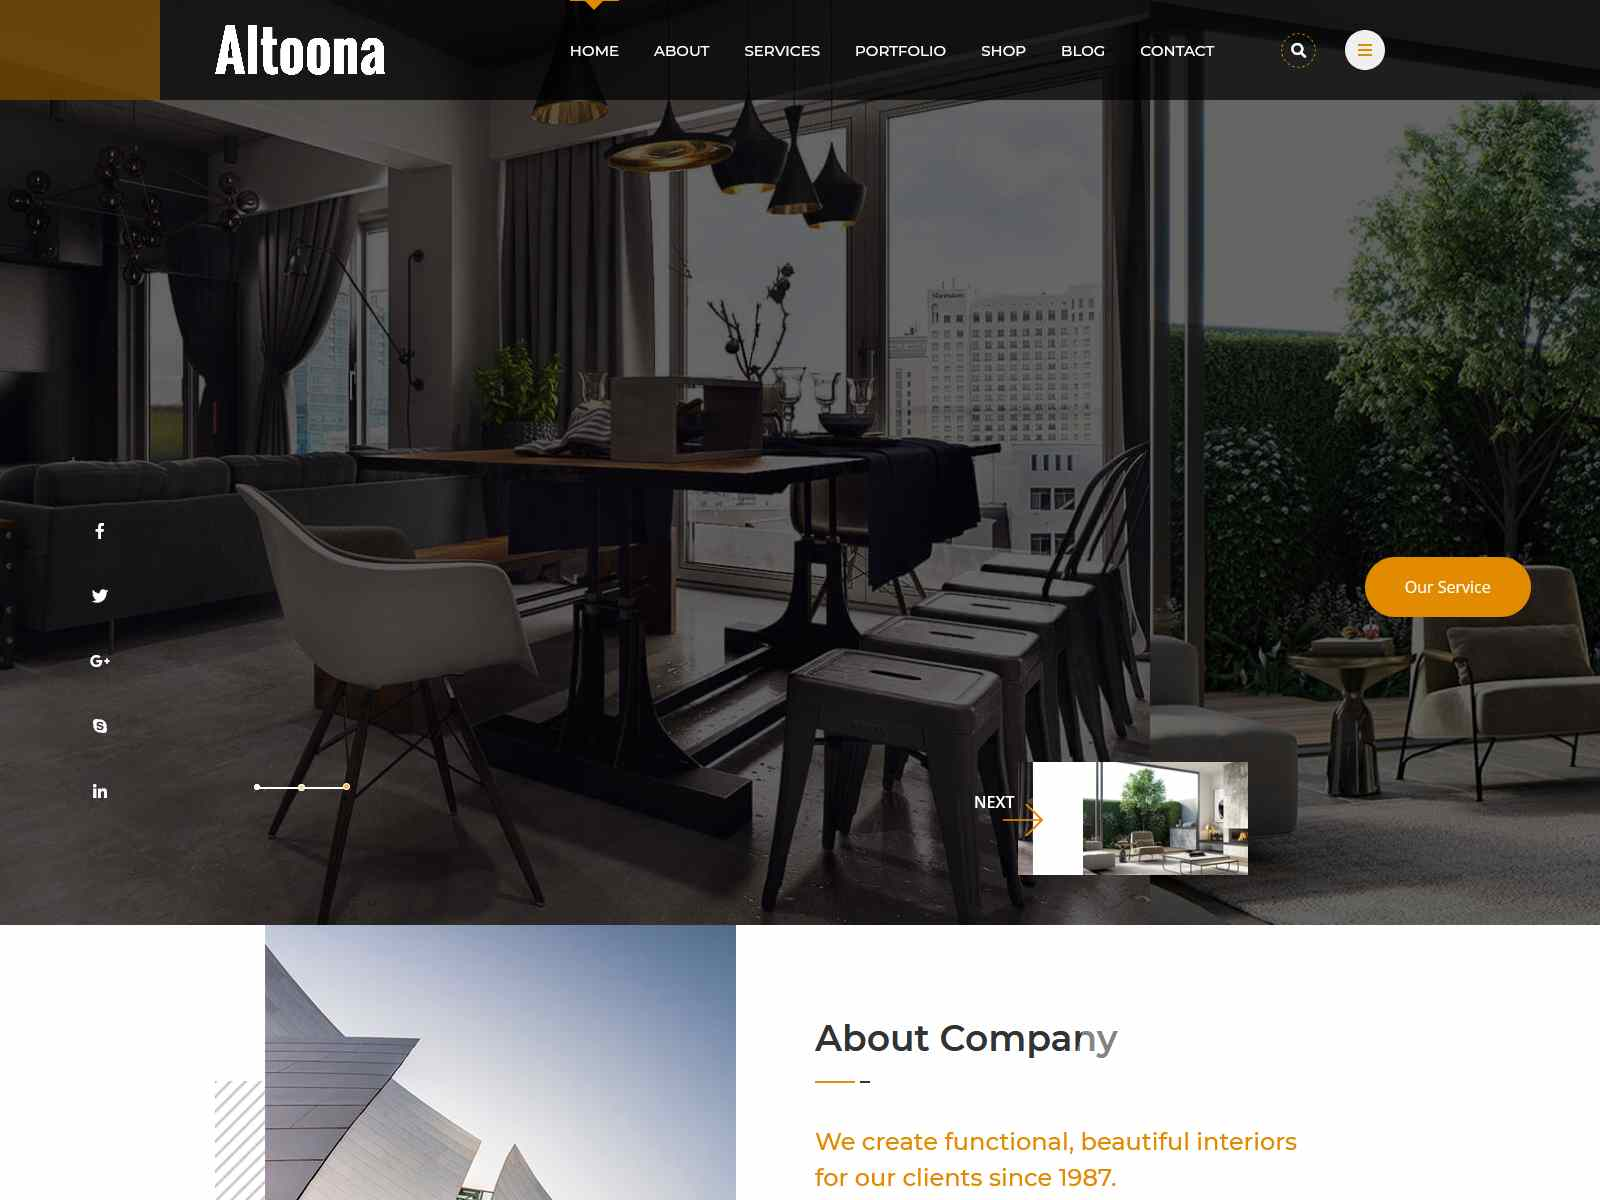 Altoona - Architecture WordPress Theme architecture wordpress themes, real estate wordpress theme